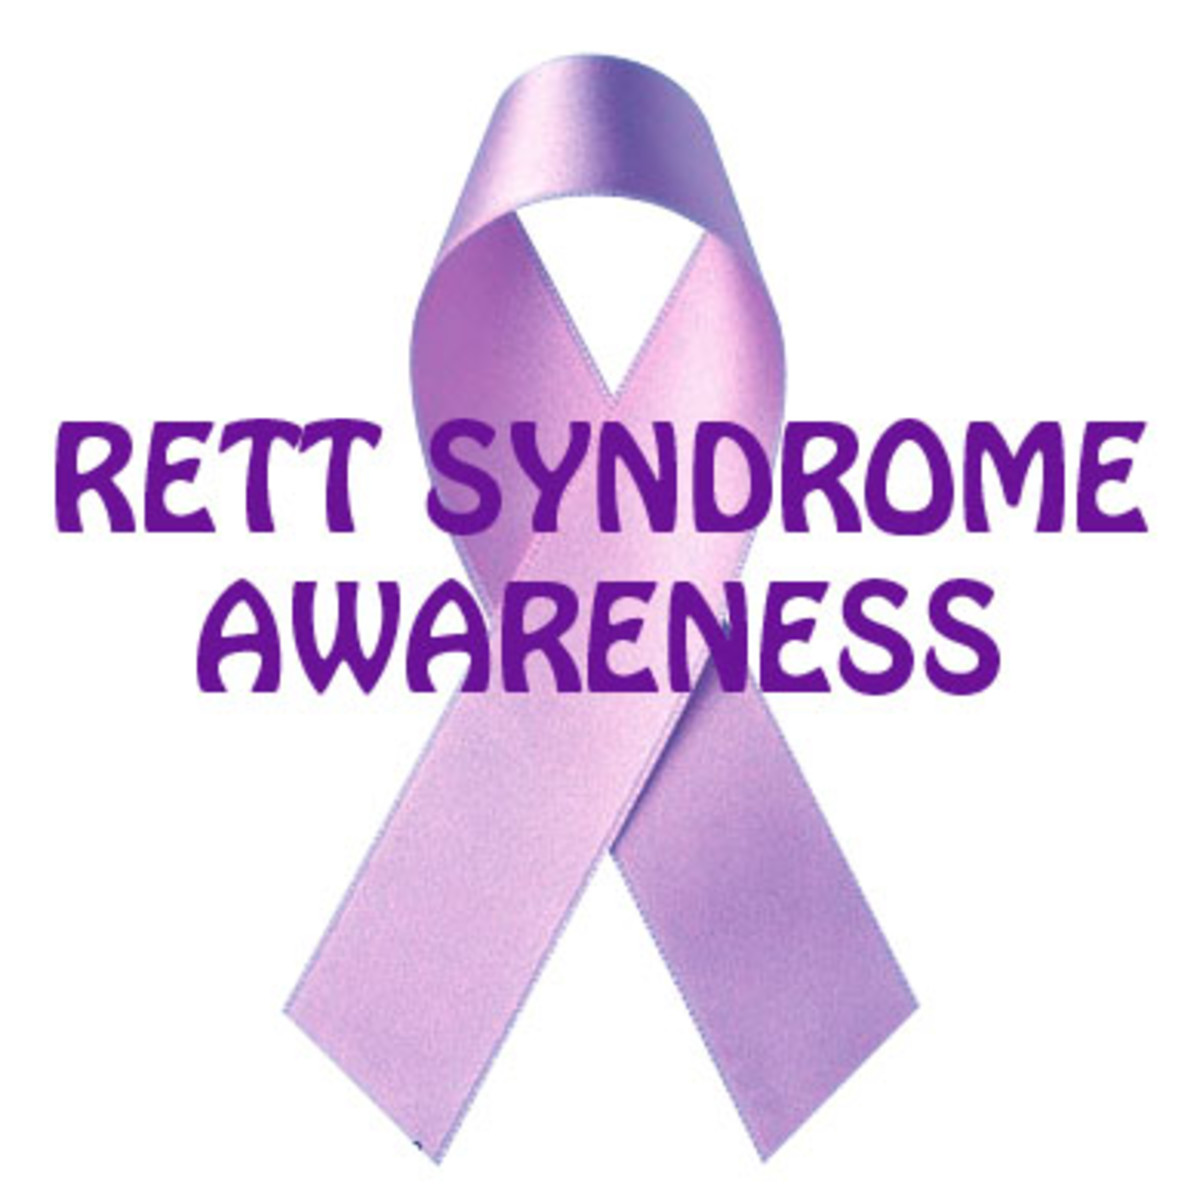 Originally posted at http://www.nursingguide.ph/article_item-1112/rett_syndrome____girls_only_autism